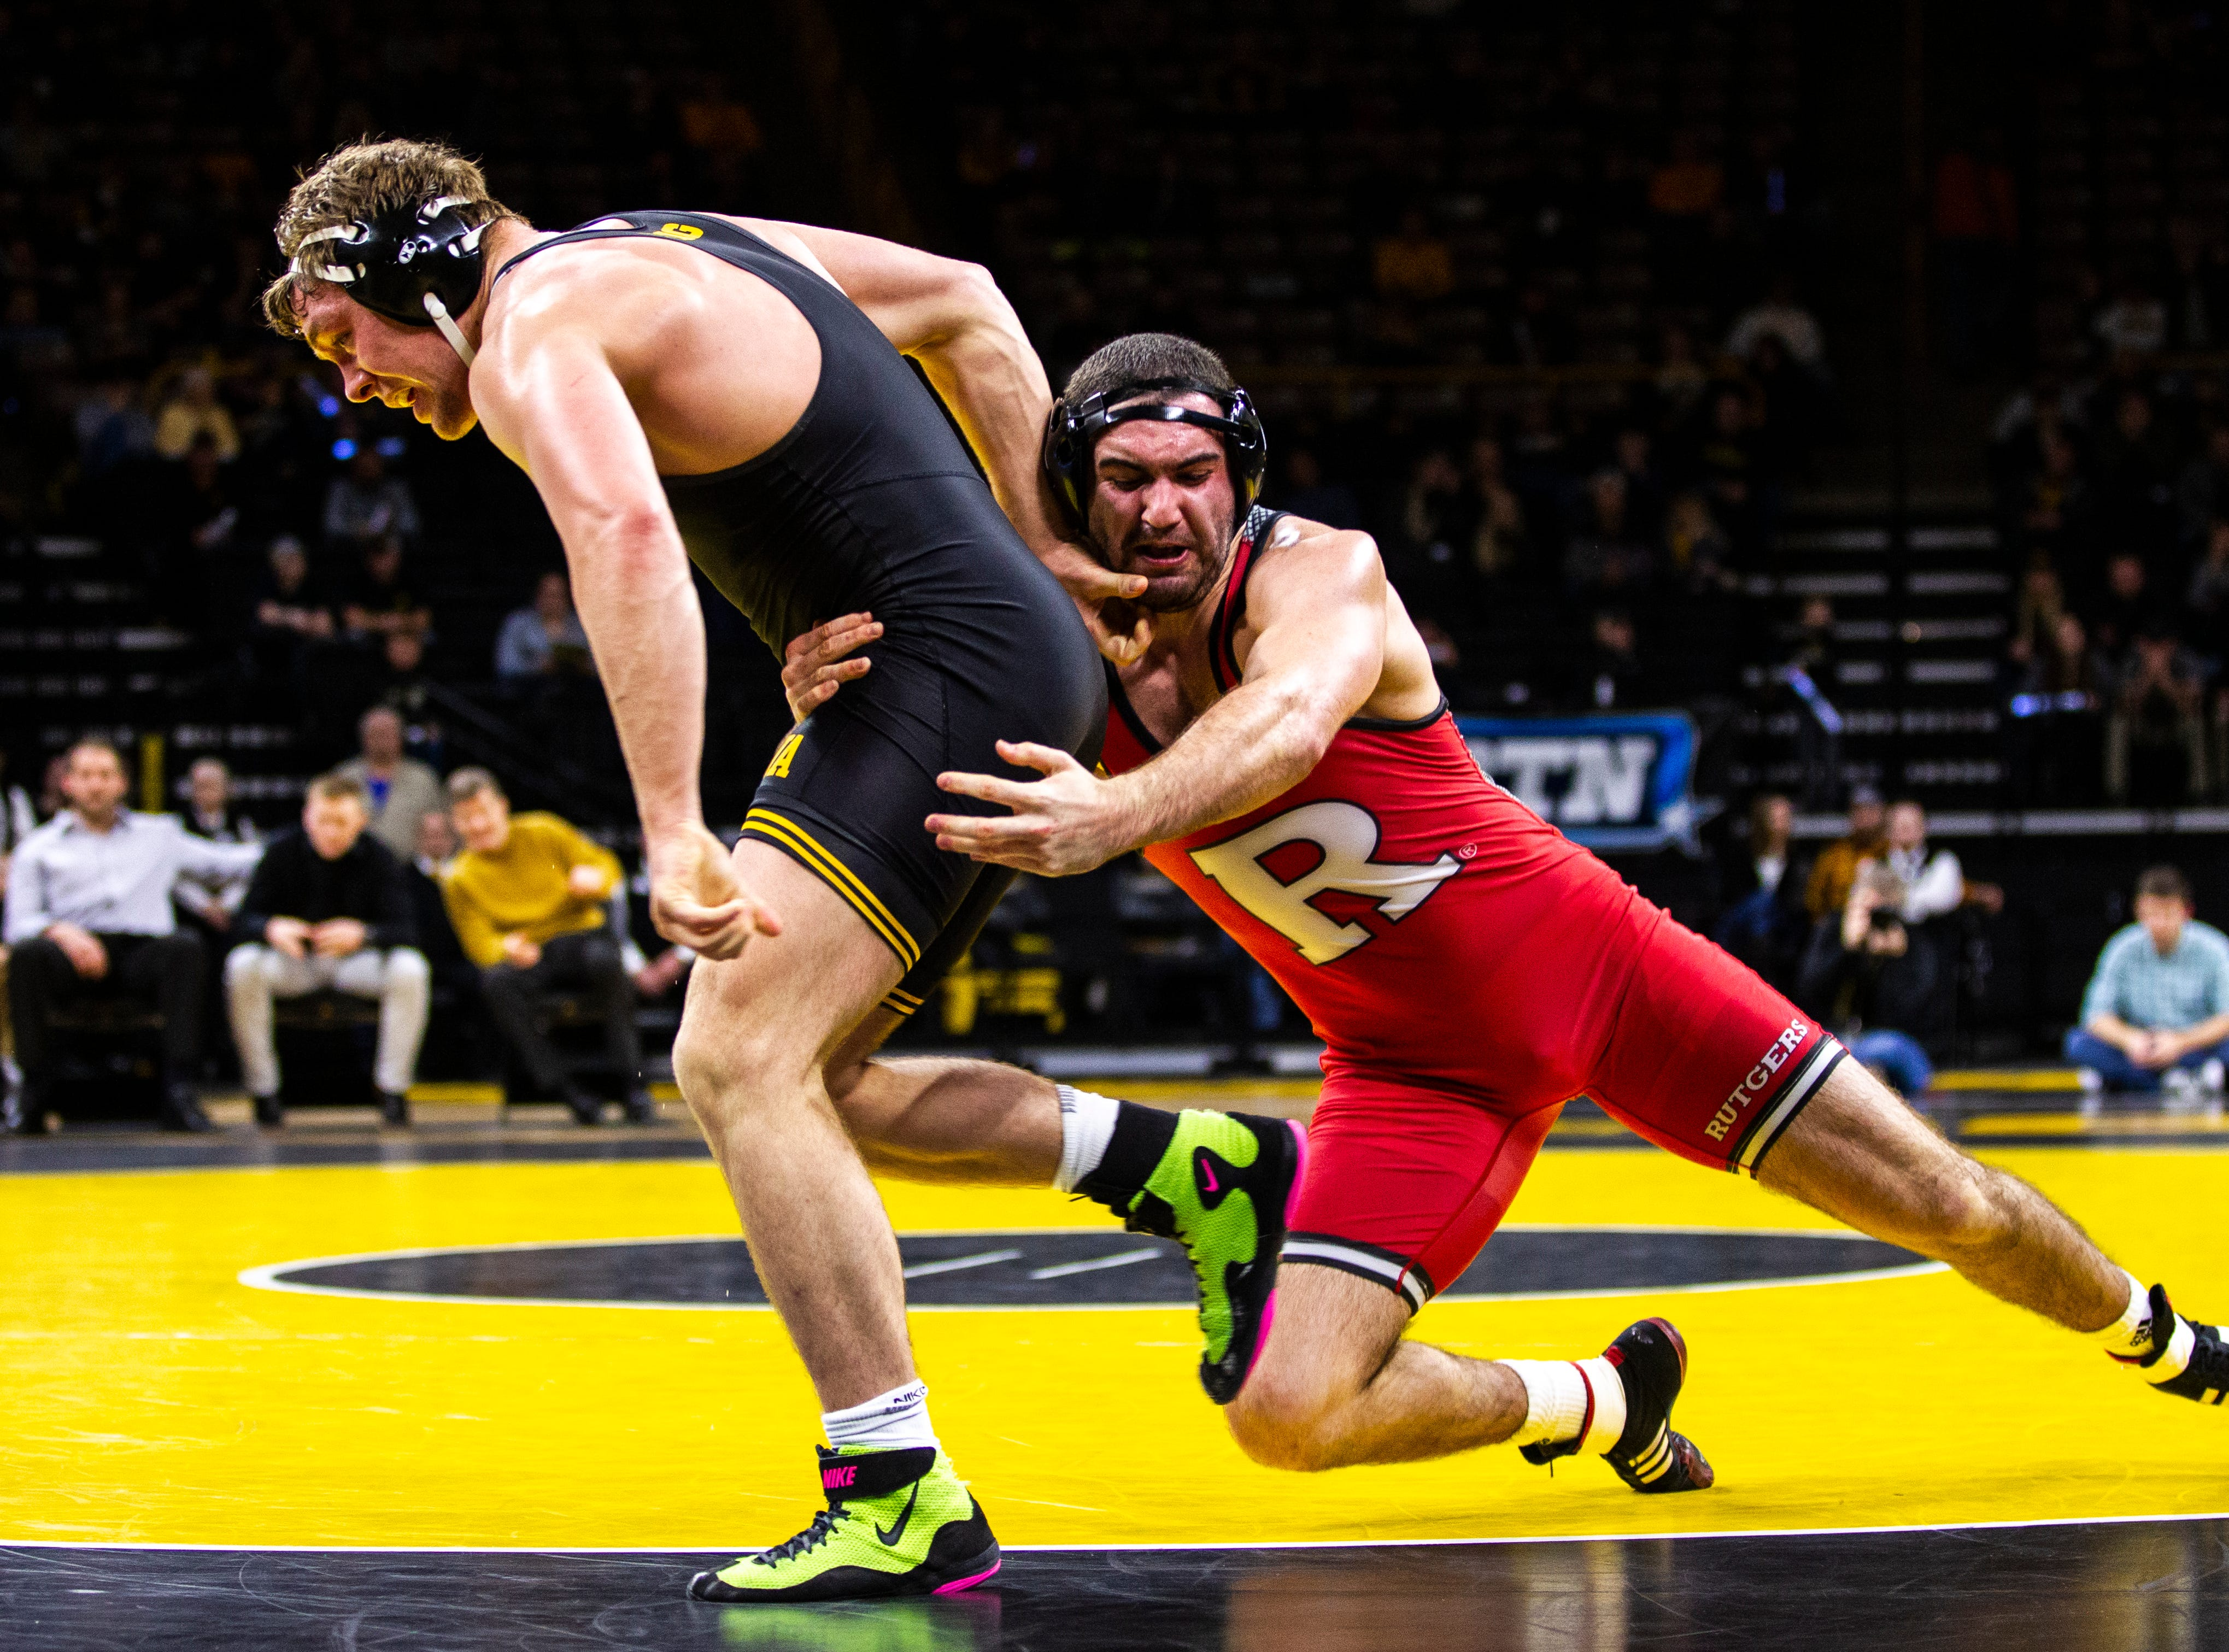 Rutgers' Matthew Correnti, right, wrestles Iowa's Jacob Warner at 197 during a NCAA Big Ten Conference wrestling dual on Friday, Jan. 18, 2019, at Carver-Hawkeye Arena in Iowa City, Iowa.